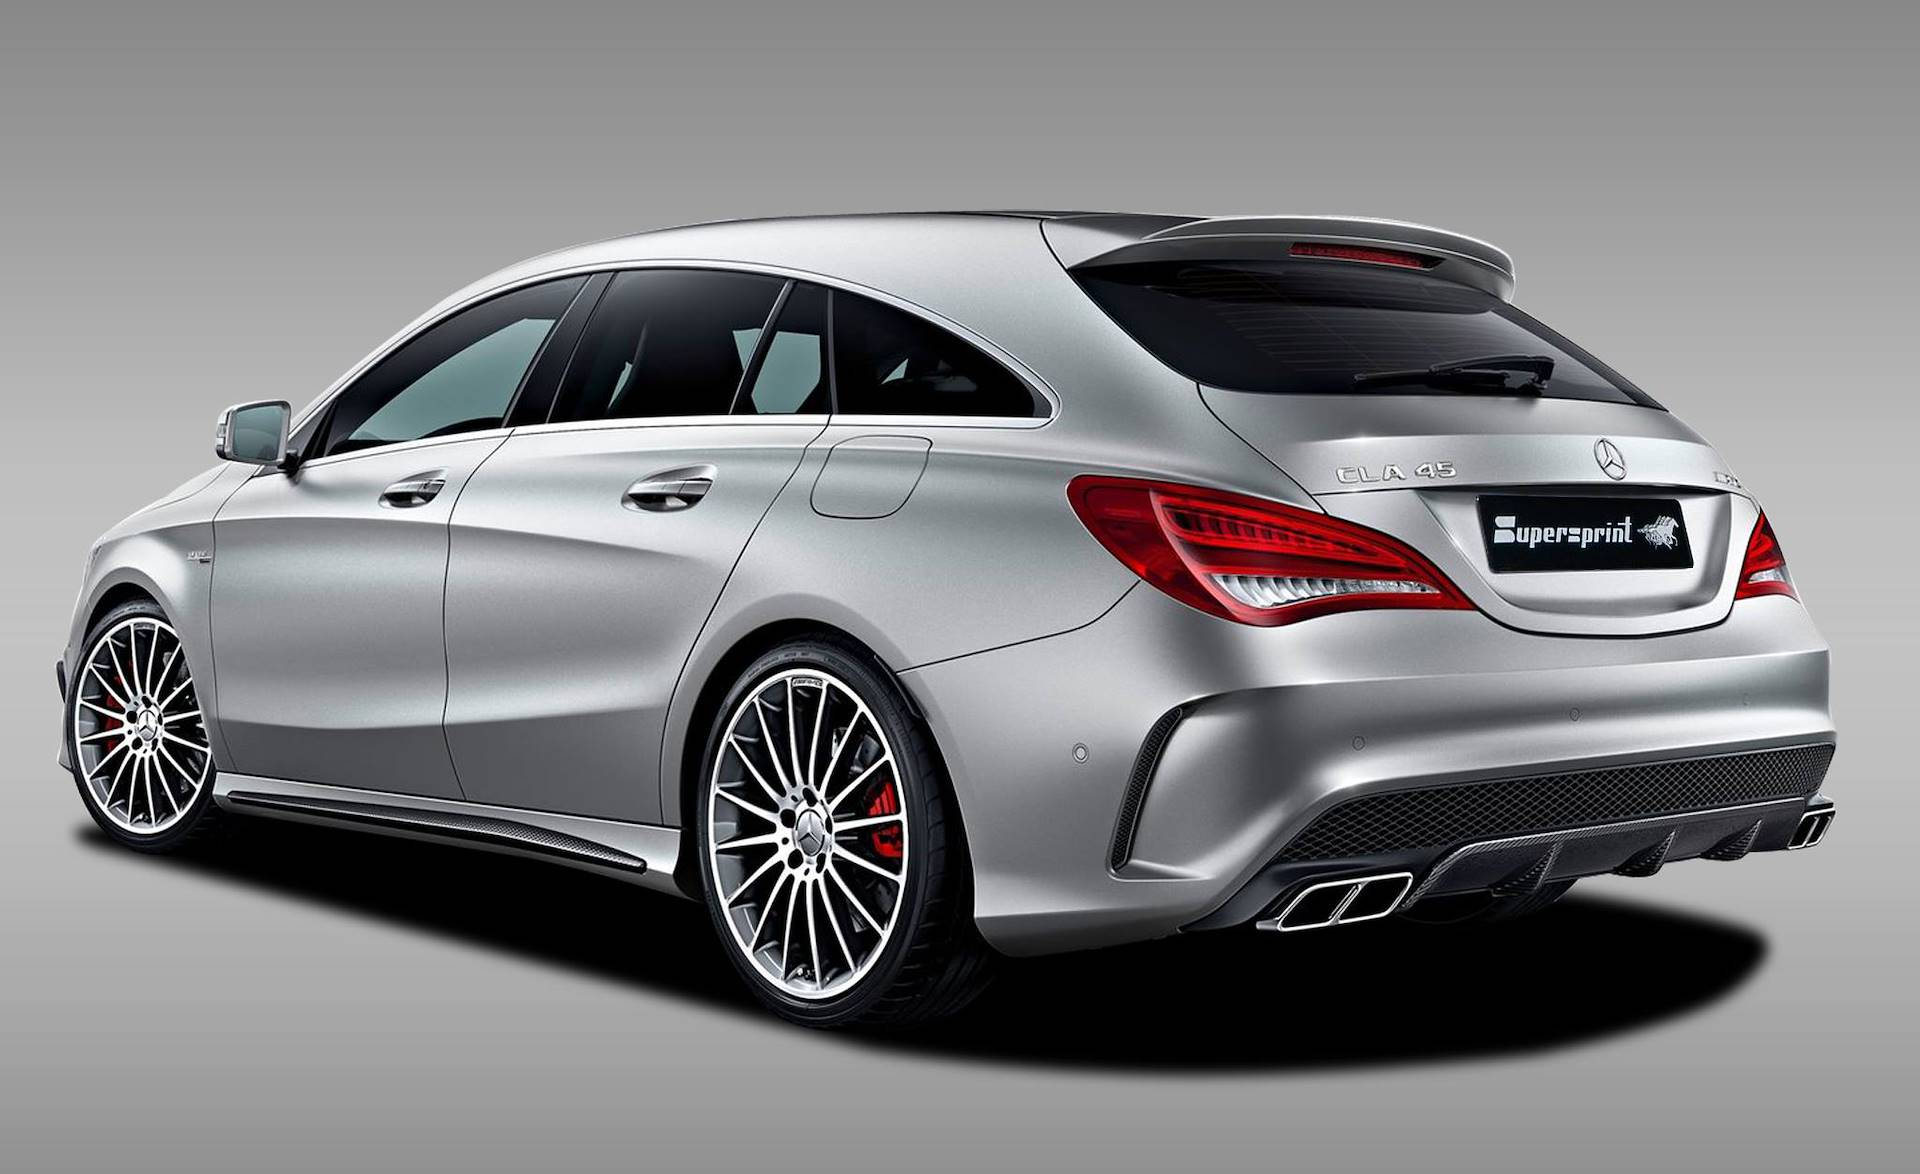 Supersprint Exhaust For Mercedes X117 Cla 45 Amg Shooting Brake 381 Hp 2015